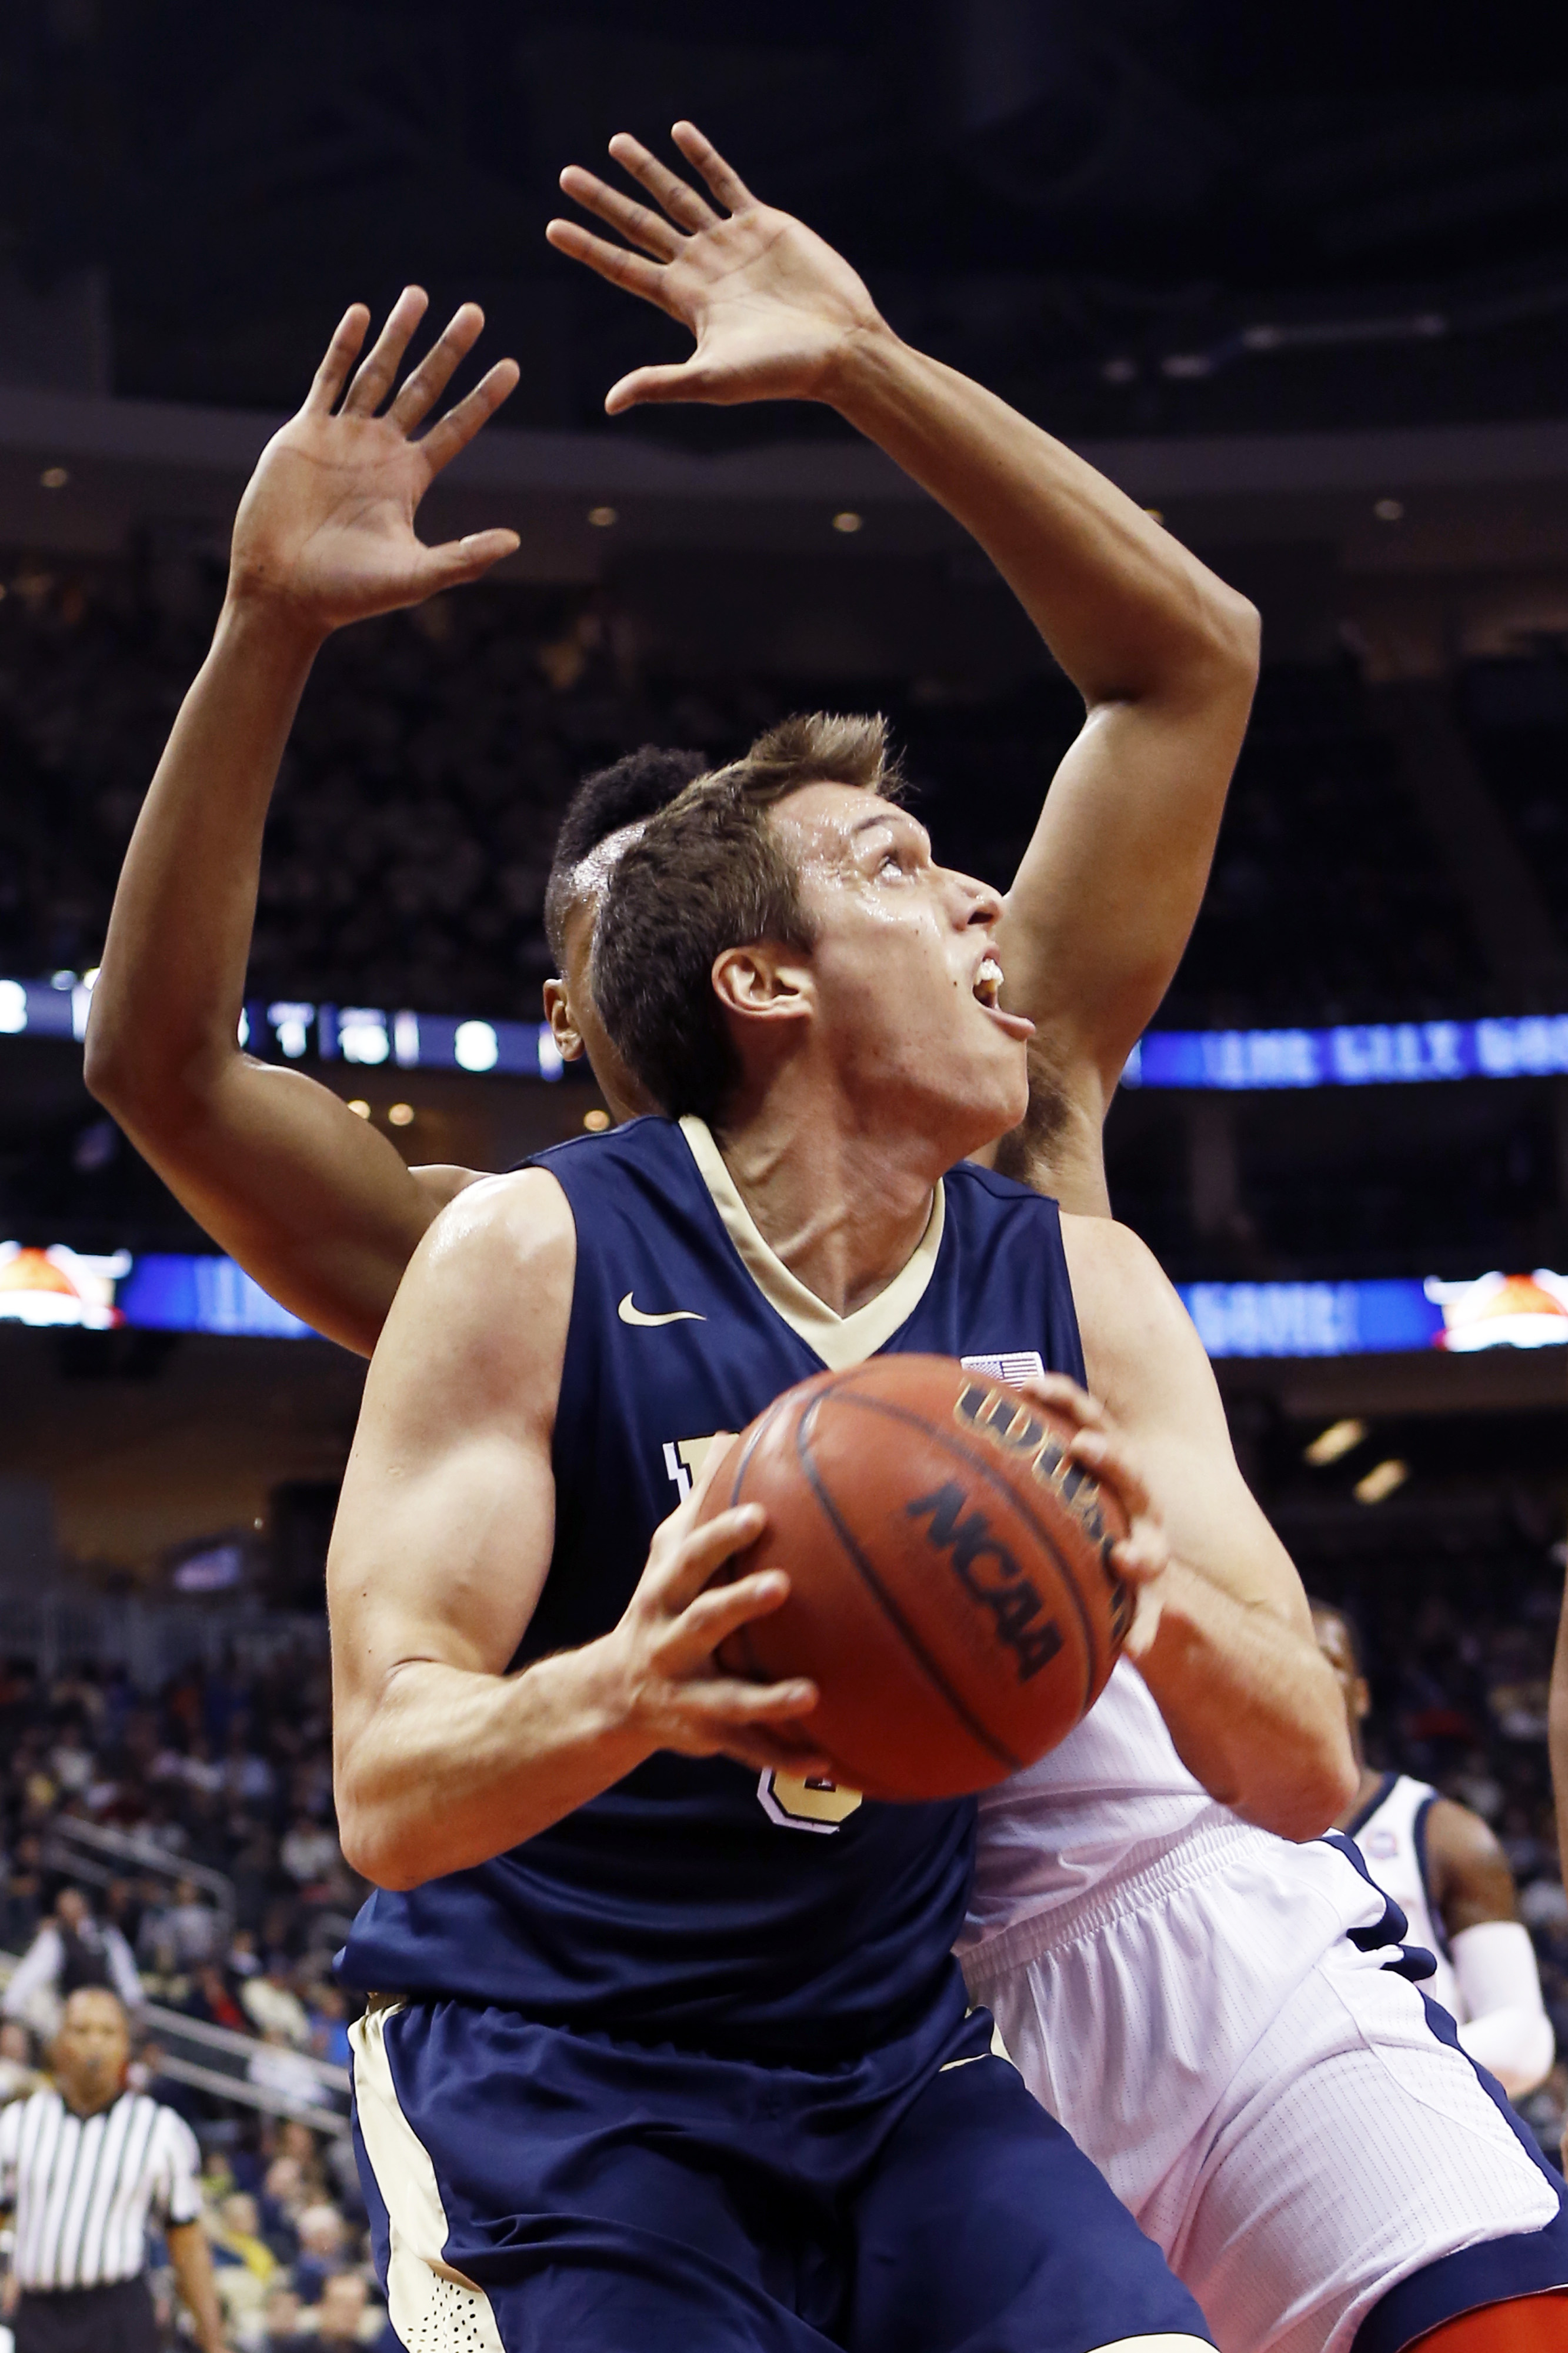 Pittsburgh's Rafael Maia looks to shoot as Duquesne's L.G. Gill defends in the first half of an NCAA college basketball game, Friday, Dec. 4, 2015, in Pittsburgh. (AP Photo/Keith Srakocic)